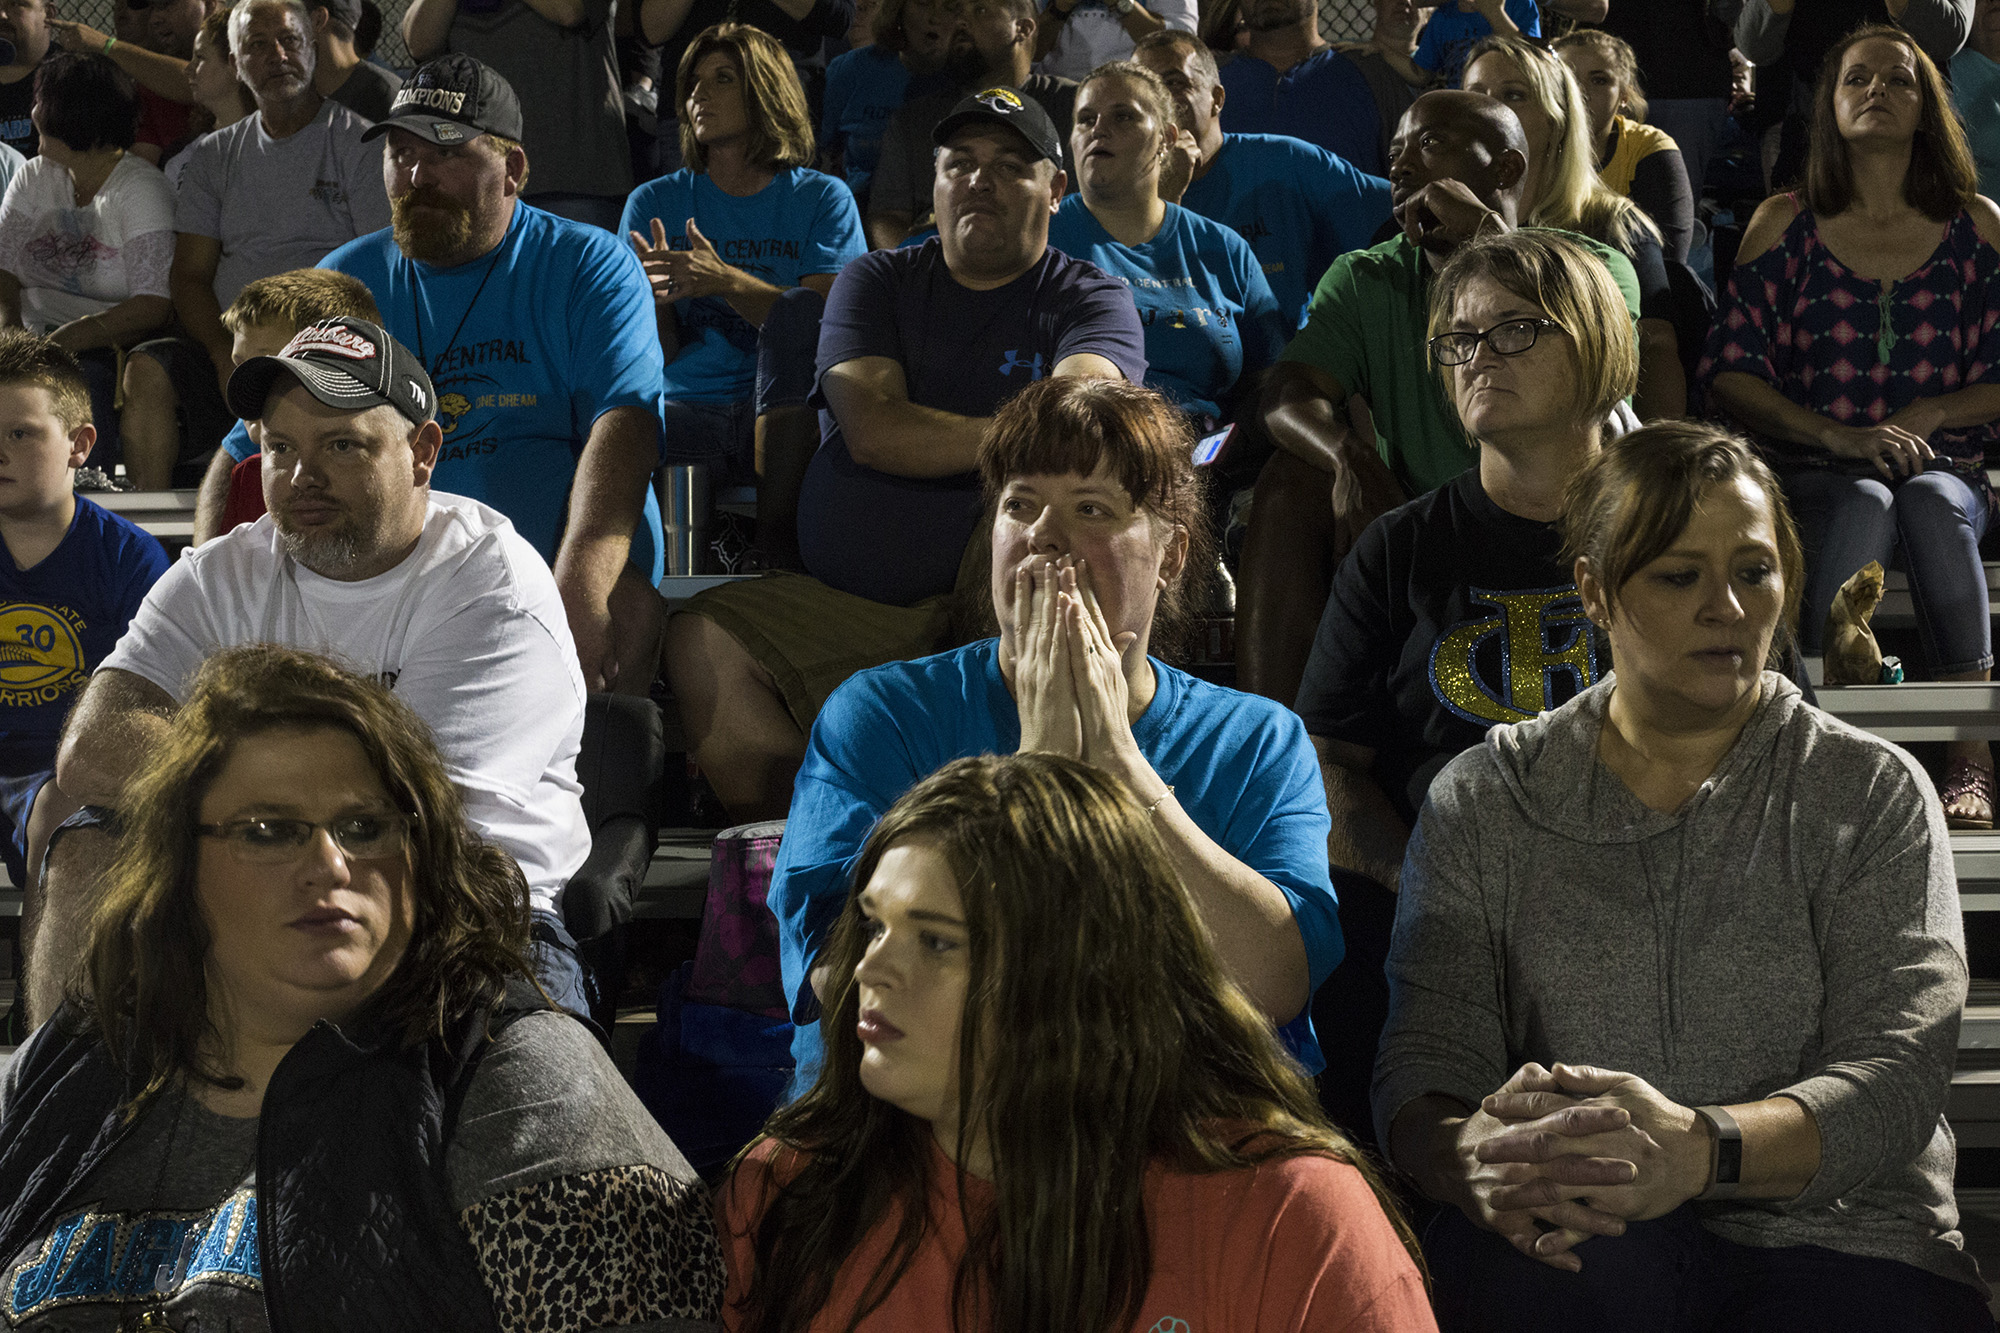 Angie Heard Minnie, center, watches intently as a play is made during a football game at Floyd Central High School in Langley, Ky., on Friday, September 22, 2017. (Brittany Greeson/GroundTruth)